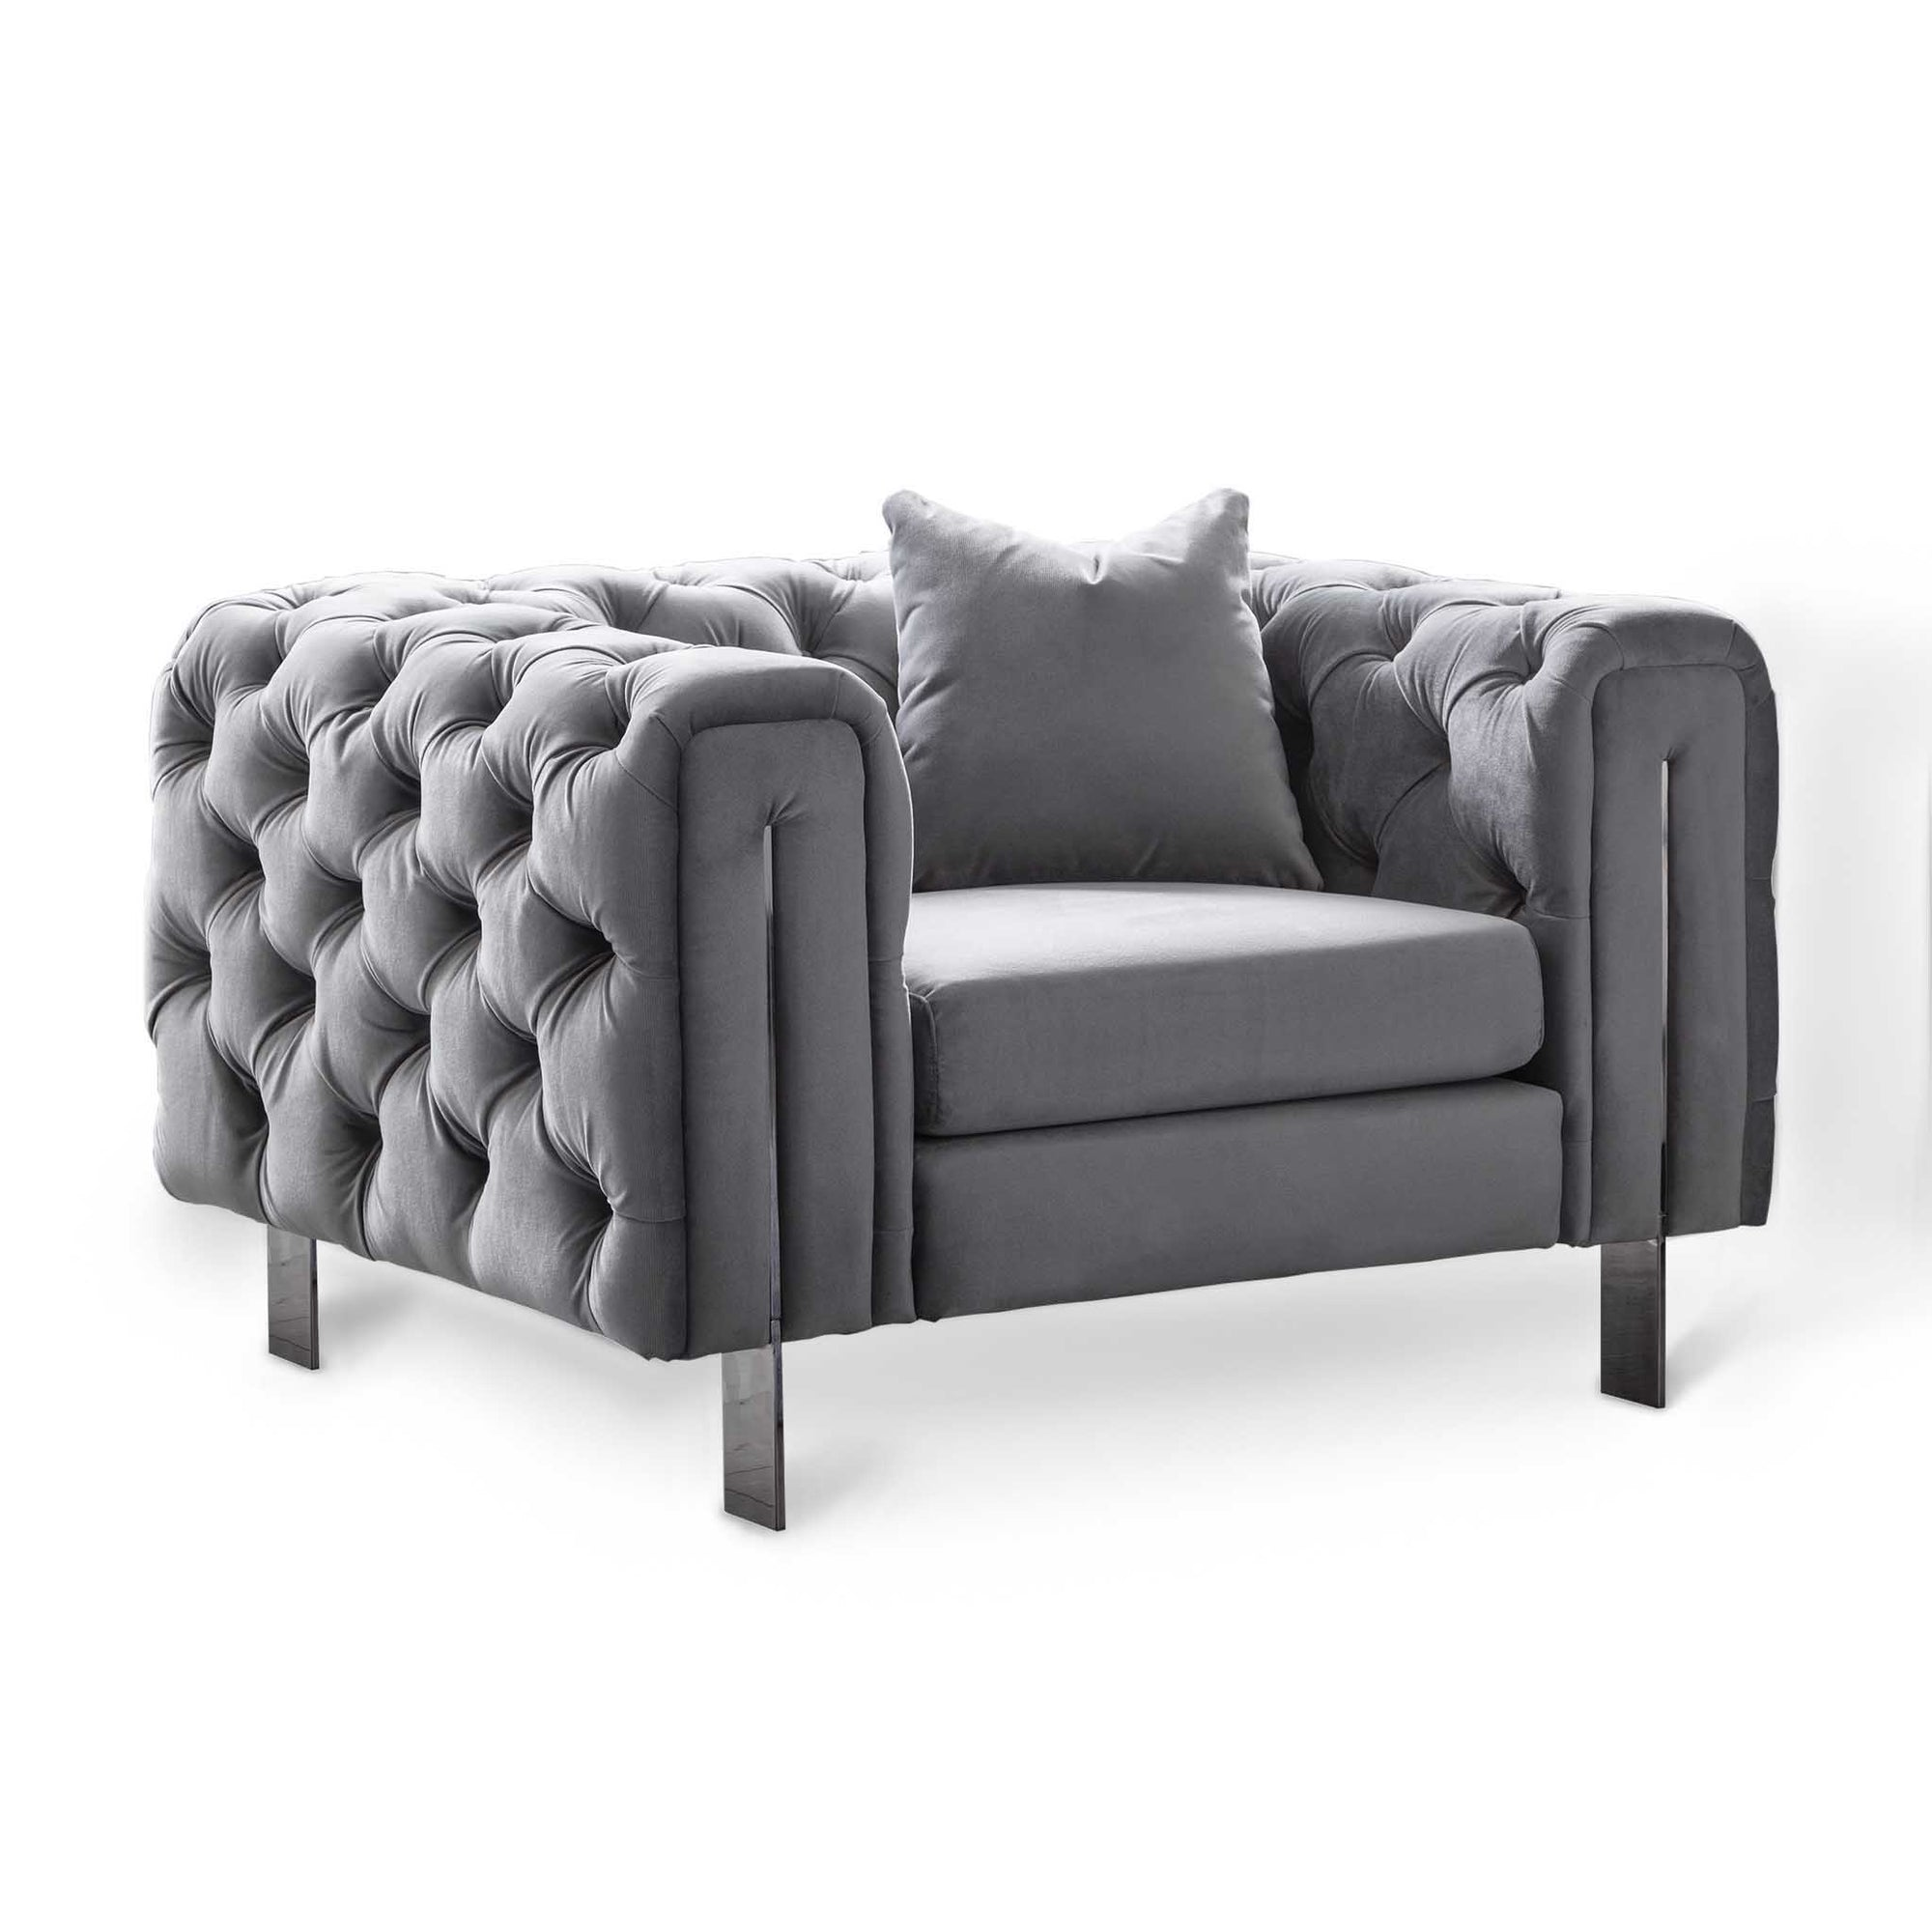 Ritz Grey Velvet Chesterfield Armchair by Roseland Furniture